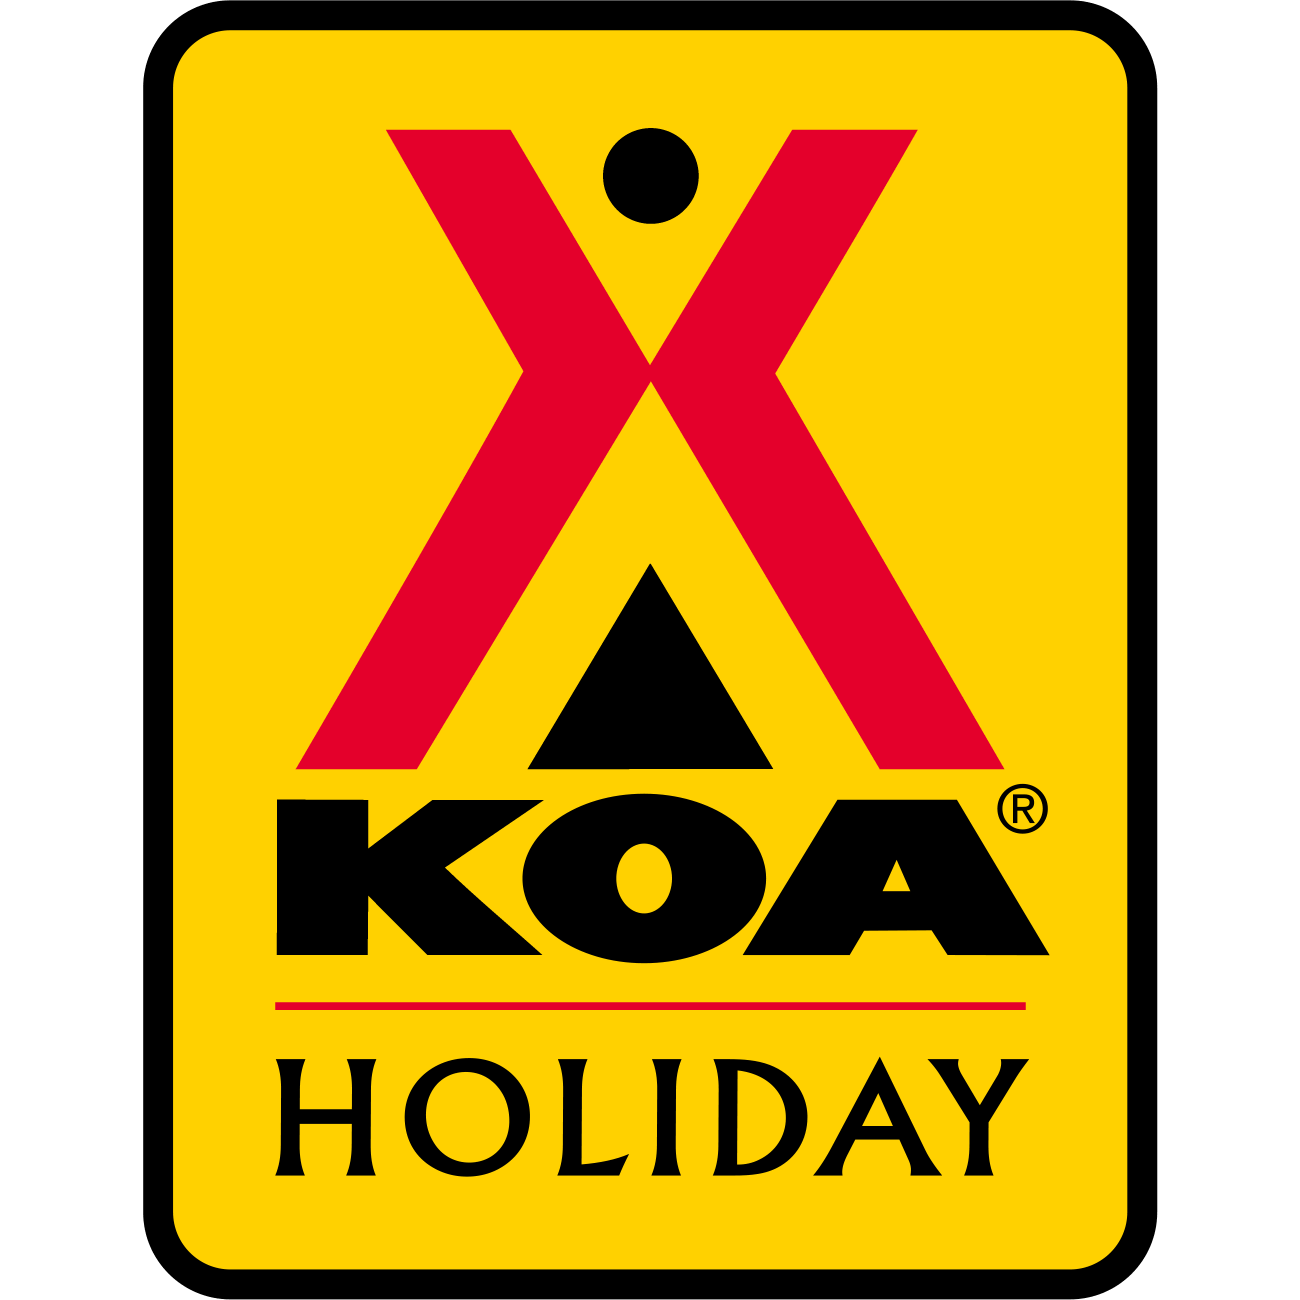 Strafford / Lake Winnipesaukee South KOA Holiday